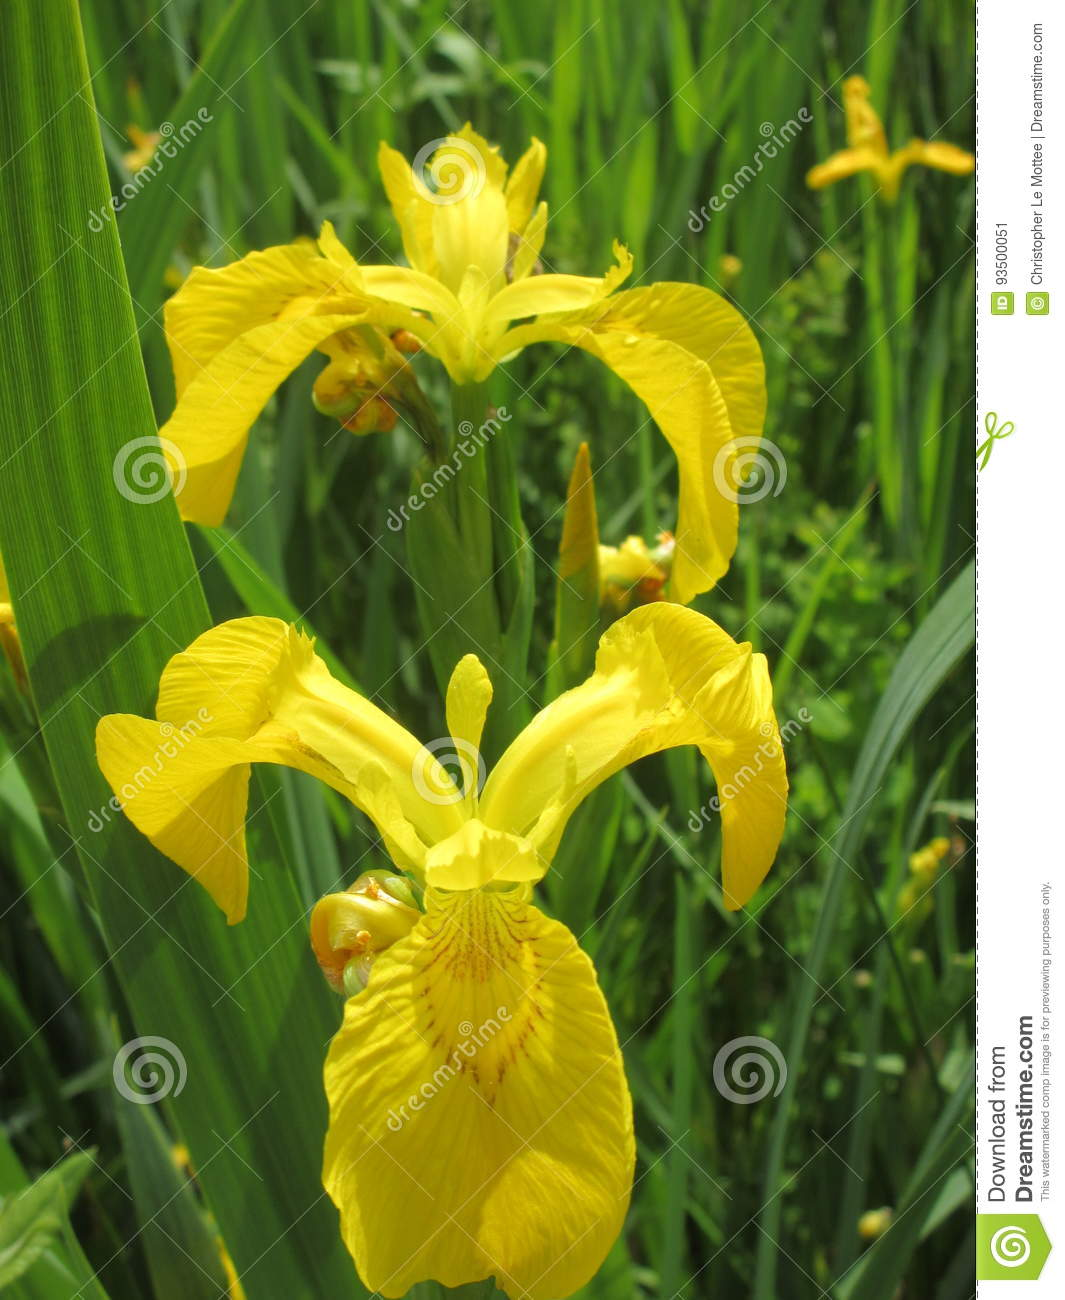 Yellow Flowers Stock Image Image Of Flowers Gorgeous 93500051